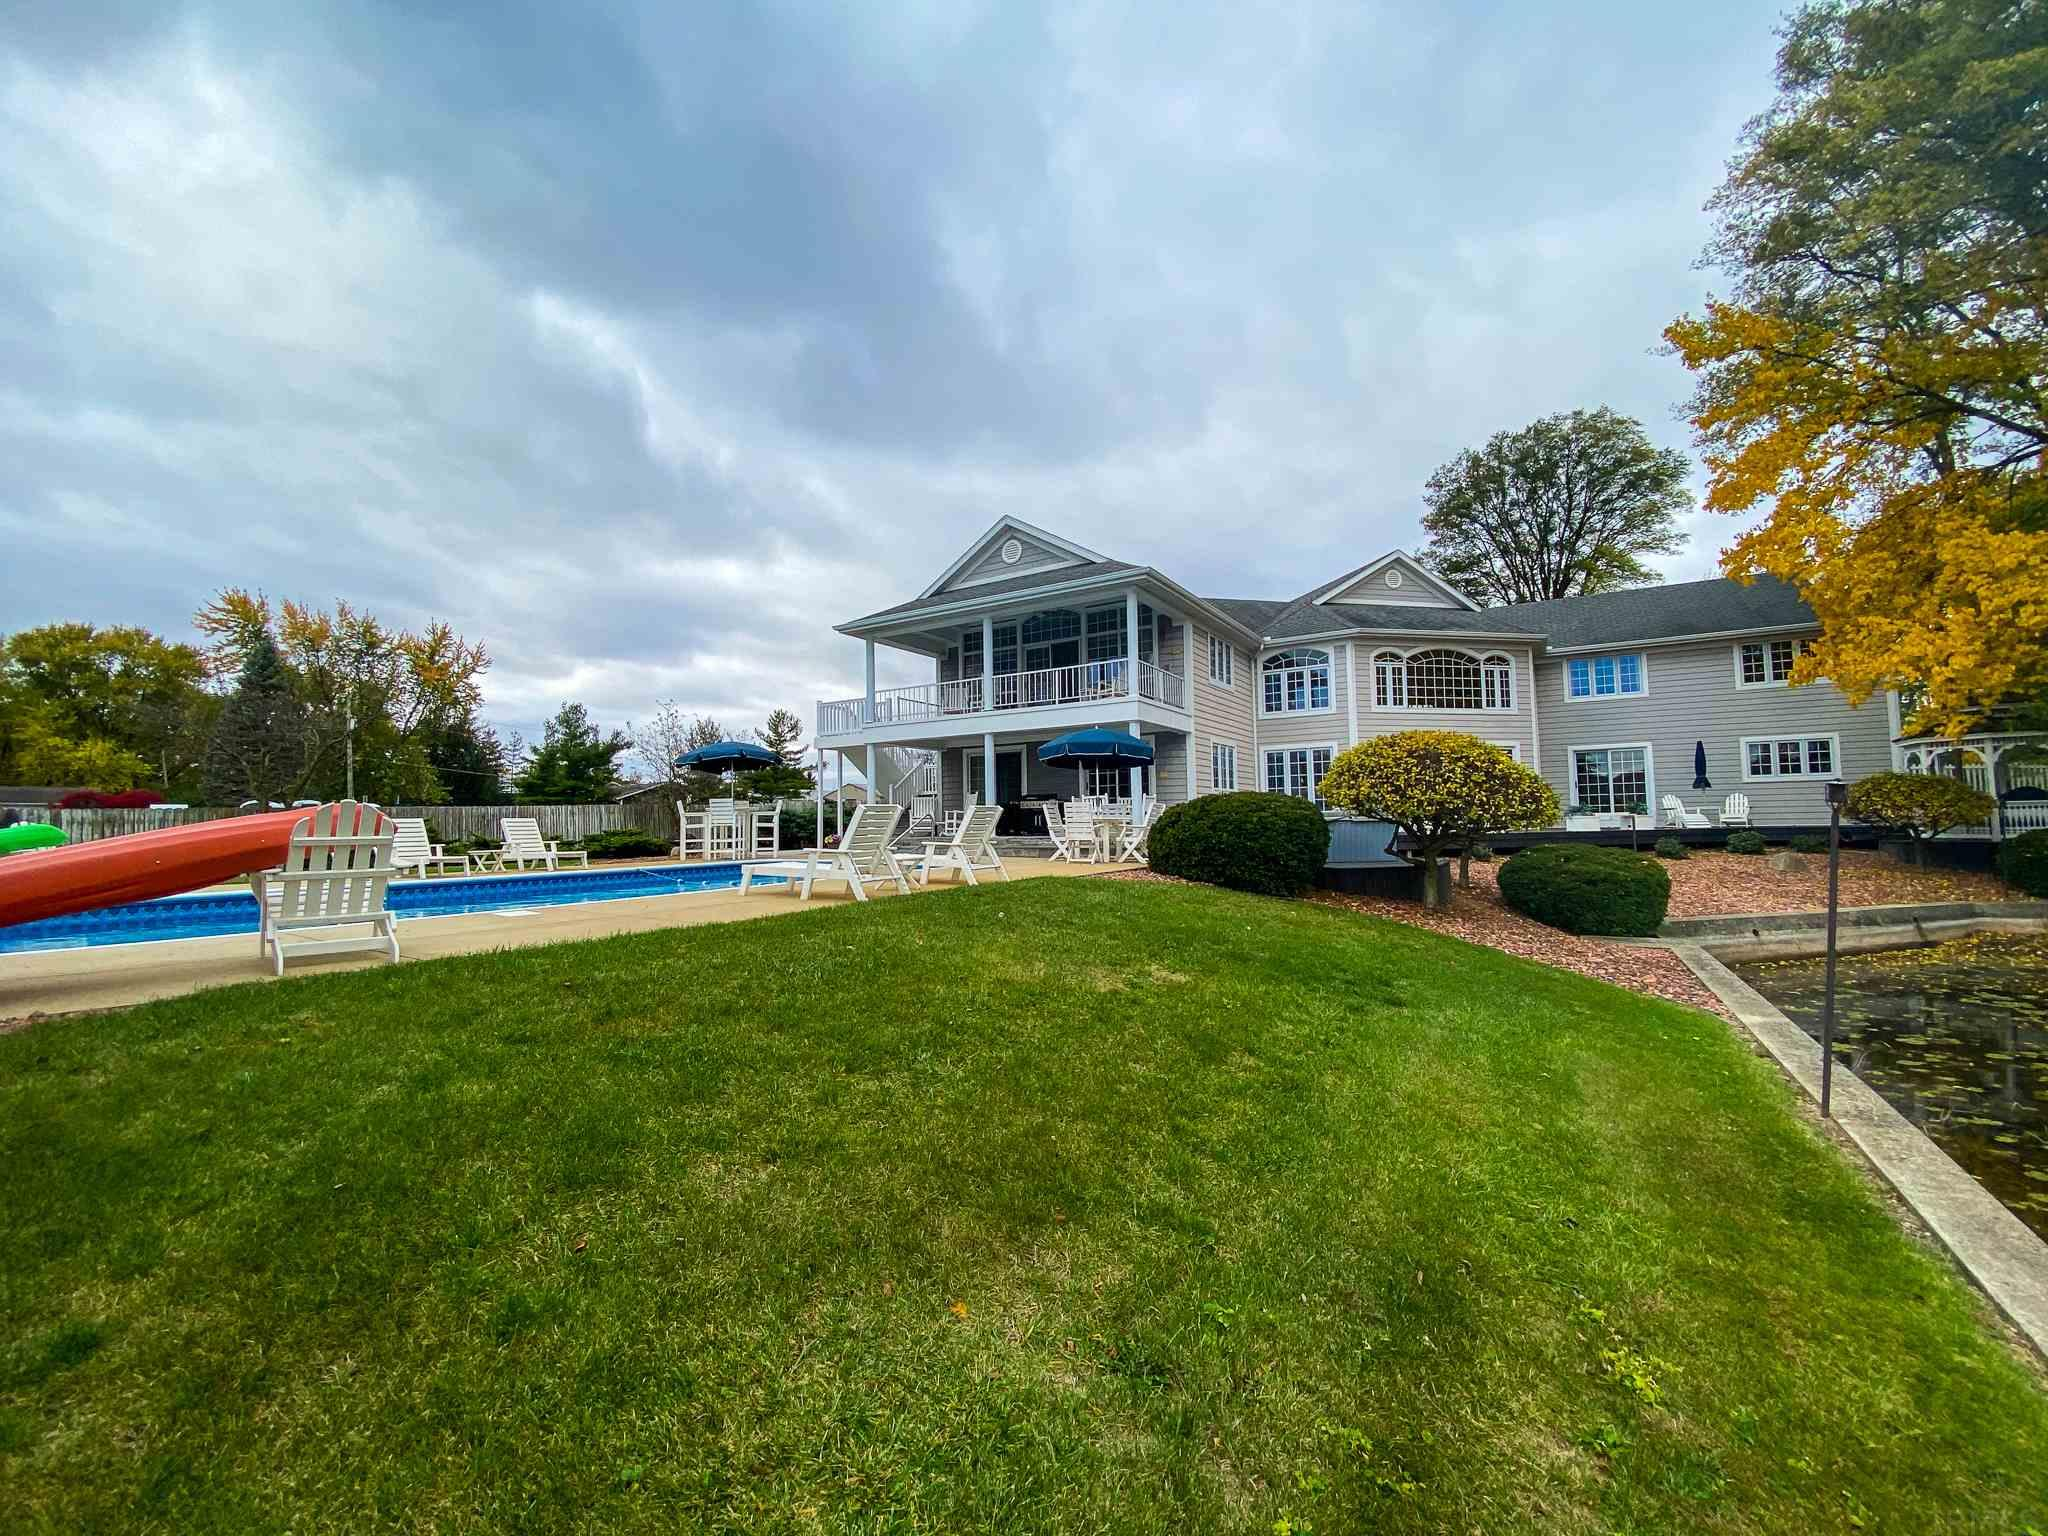 "Don't let this catch get away! 150+ Dewart Lakefront + it's own private bay are only the start to this unique 4 BR 3-1/2 BA majestic home. 4,848+/- finished sq ft, lakeside in-ground pool, on nearly 1 acre. Begin your day with coffee & a warm muffin on your private balcony off the master suite, while taking in the magnificent lake & pool views, which can also be enjoyed from the remaining 3 bedrooms, great room, kitchen, dining area & bar room. The massive great room with a ventless gas stone fireplace & built-in cabinets, surrounded by a walk-around loft above will captivate upon entering. Stock the large walk-in pantry with culinary delights to prepare delicious meals in your spacious kitchen boasting a great work island & ample space to prepare large meals. The custom wet bar includes a wine cooler &  ""cafe"" area that opens to the pool. The 1st floor bedroom also opens to the pool area, boasting it's own vanity sink & W/I closet, with a convenient full bath right next door. The large laundry room is conveniently located on the 1st floor. The upper level has extensive storage for your extras. The master suite features a tray ceiling, ceiling fan and opens to the private balcony overlooking the lake & pool. The bath includes a walk-in shower, jetted tub & large walk-in closet. Two more bedrooms & the den/guest room, a sitting area in the loft & another full bath with twin sinks complete the upper story. 2 Geothermal units will keep you comfortable no matter where you are, & the irrigation system will provide less work in the summer. The easily accessible 4' crawl has poured concrete walls & floor, adding even more storage space. Prepare wonderful grilled delights on your hearth-stone paved covered patio in all seasons. There is also 110 and 220 amp service at the lake, a lovely Gazebo, 10' x 16' shed w/2 doors & 2 lofts...and so much more!"